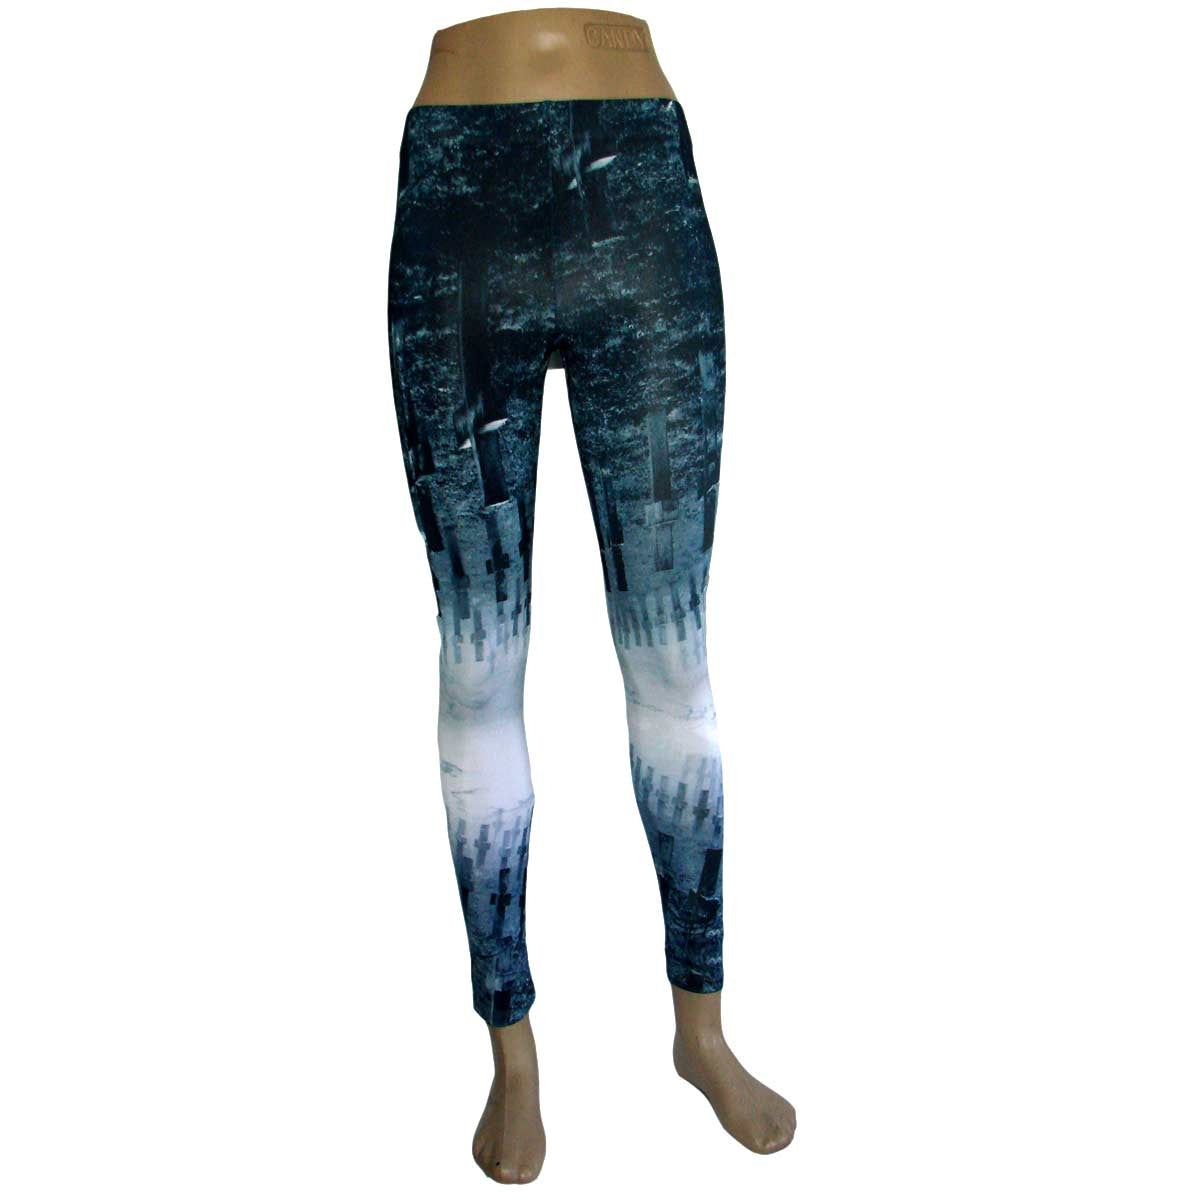 Widow Cemetery Leggings Another Way of Life